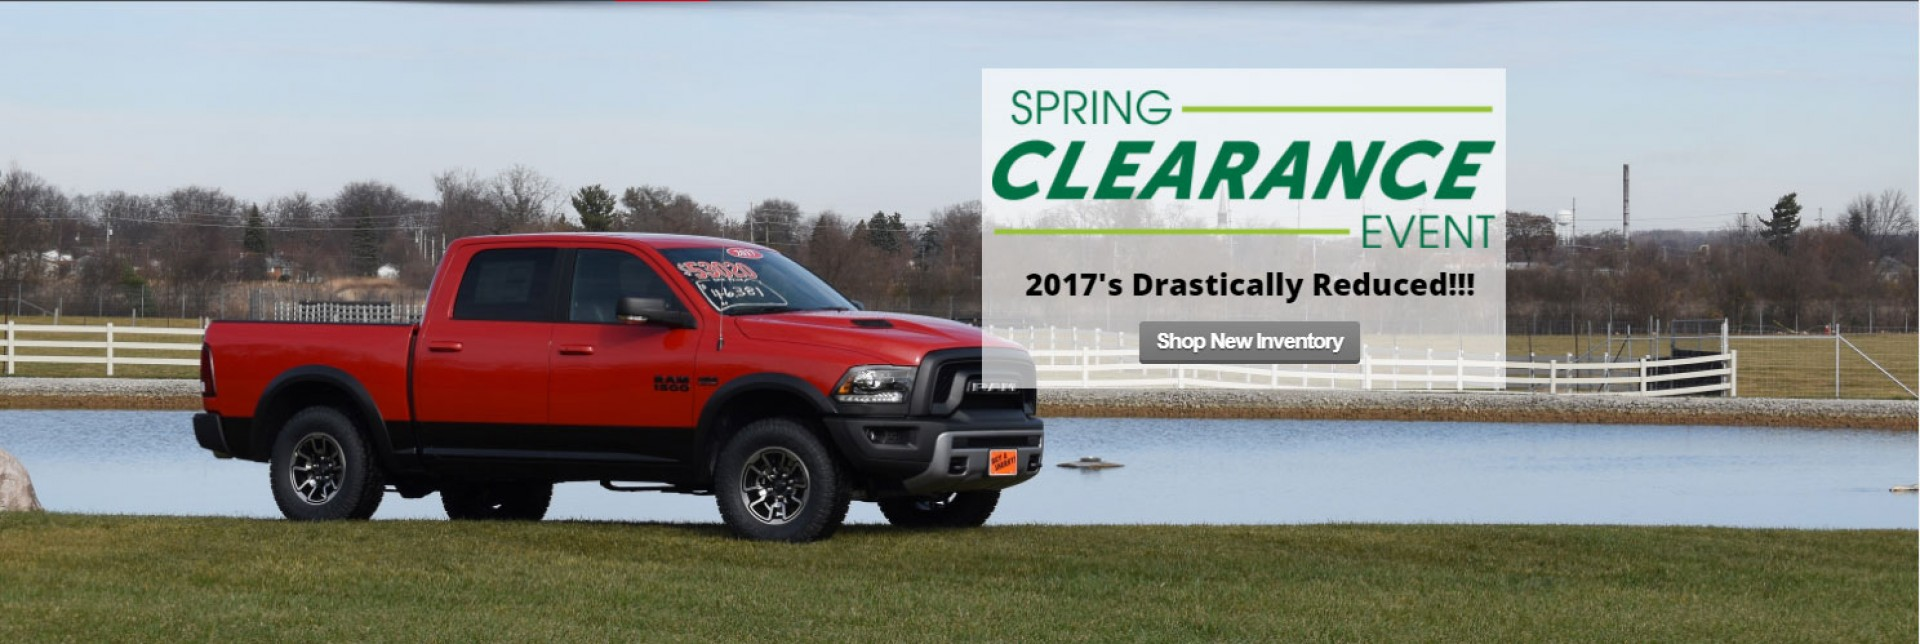 Spring Clearance Event 2017's Drastically Reduced